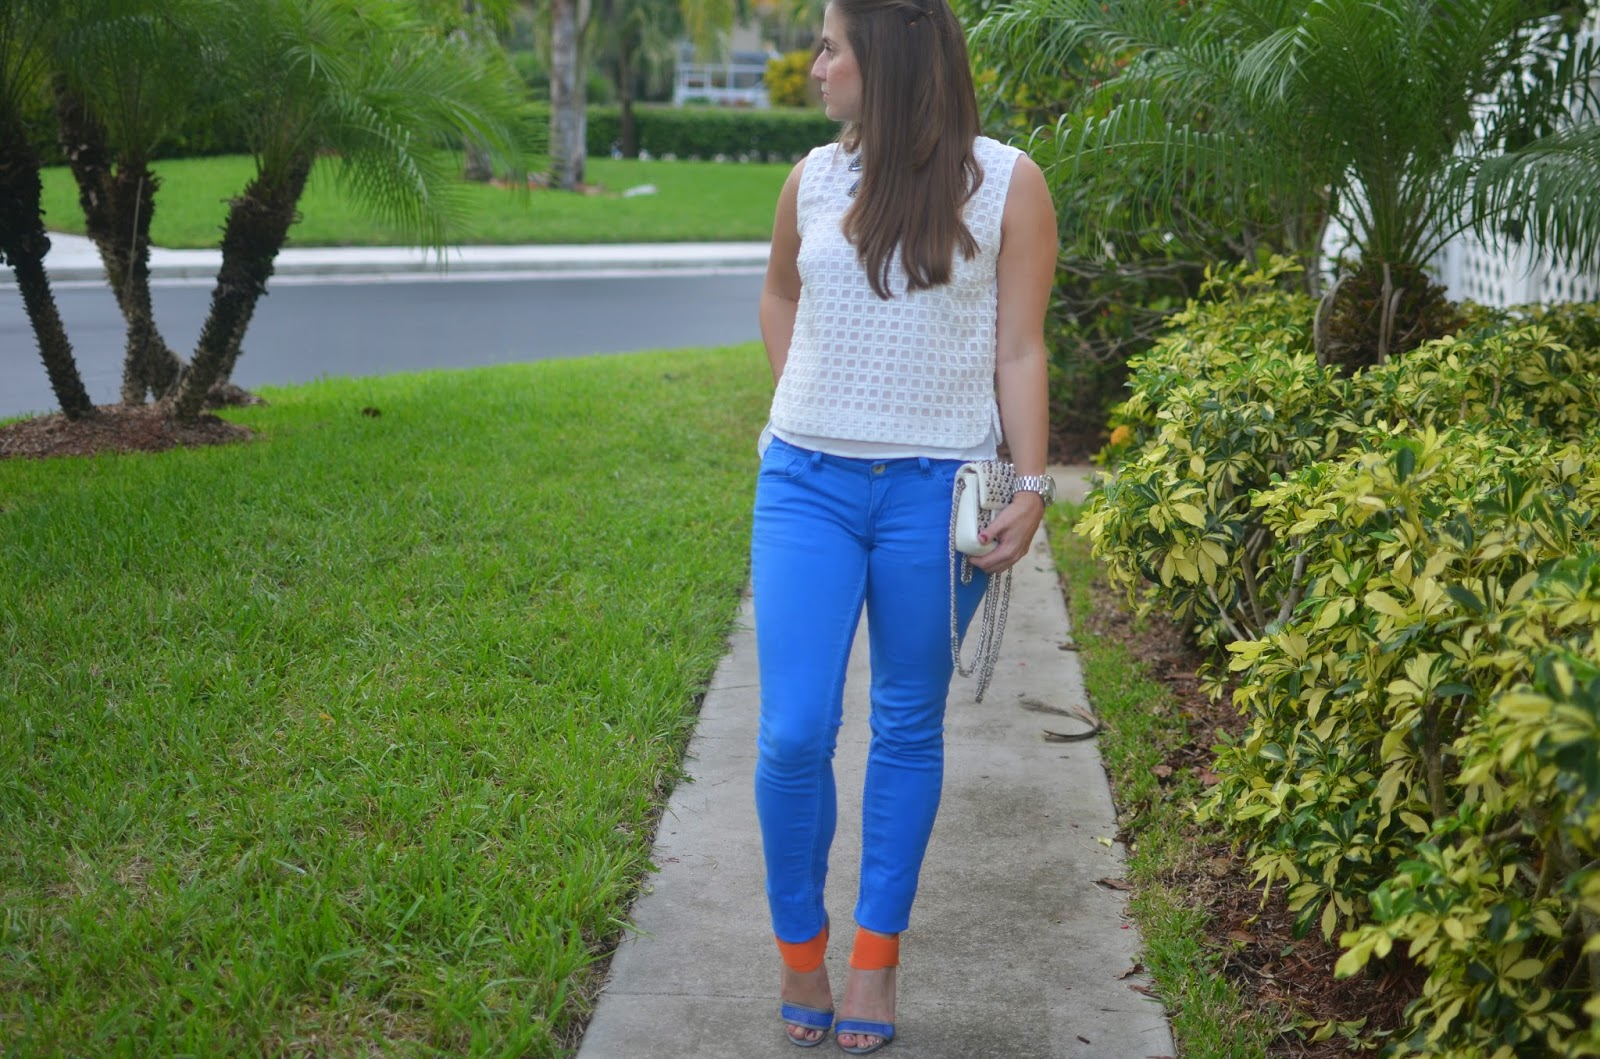 Cobalt jeans - Emma & Sophia - Statement Necklace - White top - studded bag